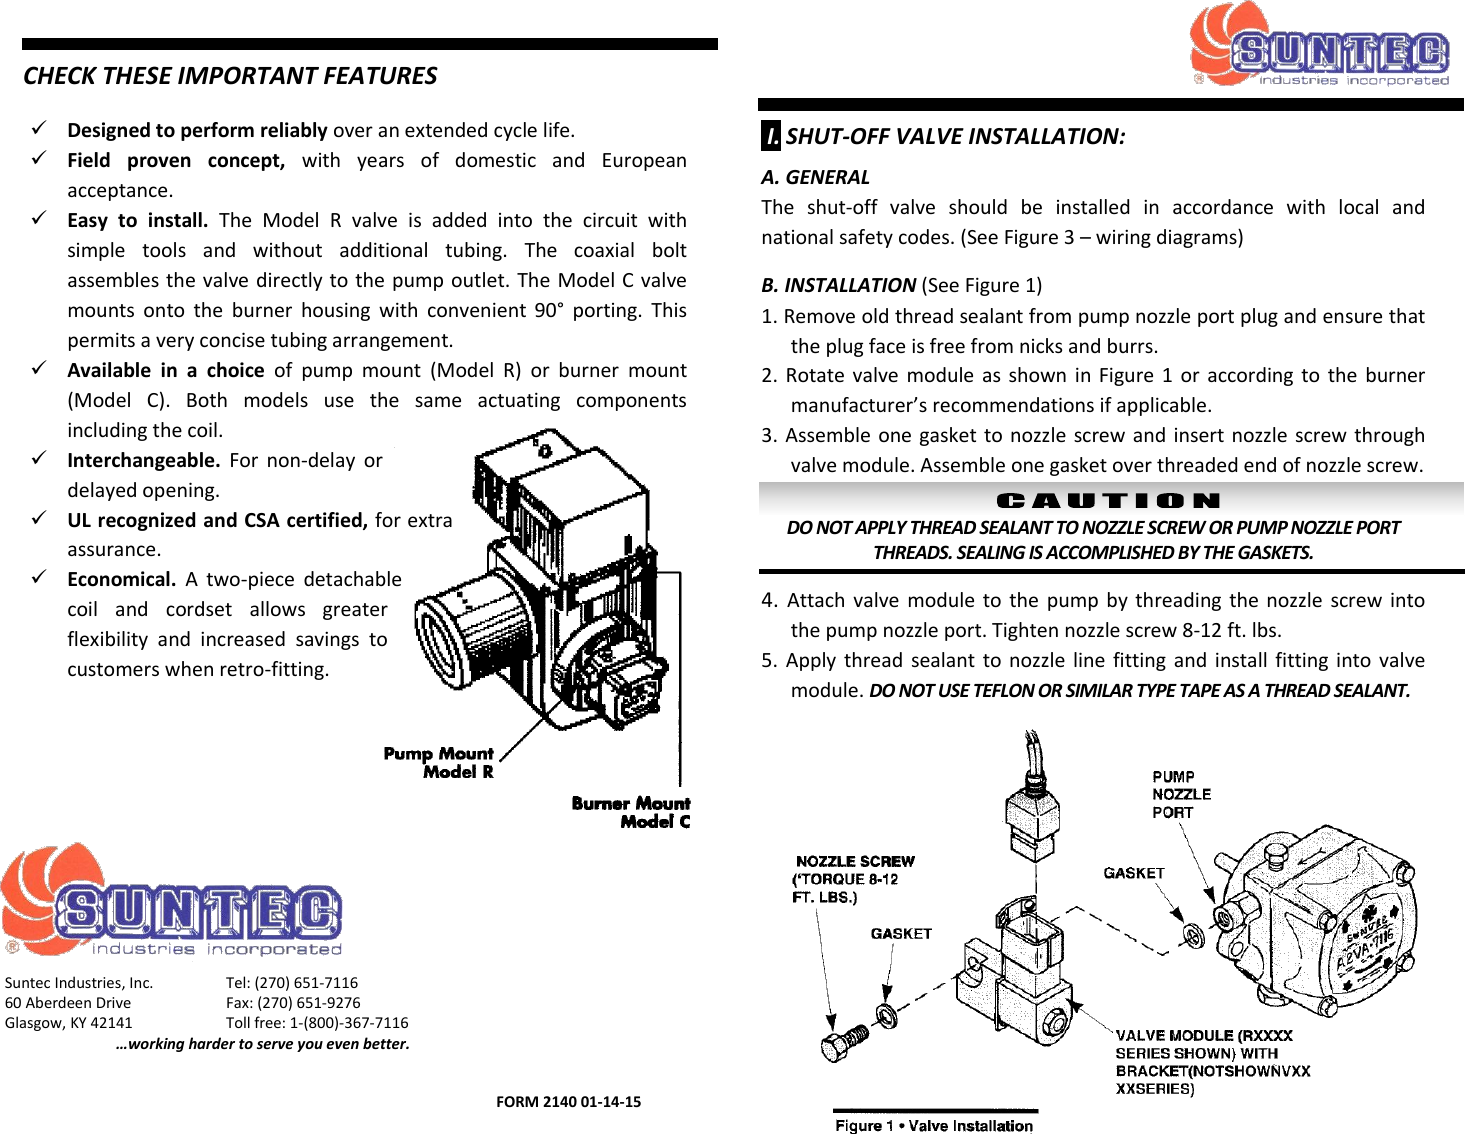 536596 2 Suntec R C Valves Installation Instructions User Manual Torque 8 Wire Diagram Page 1 Of